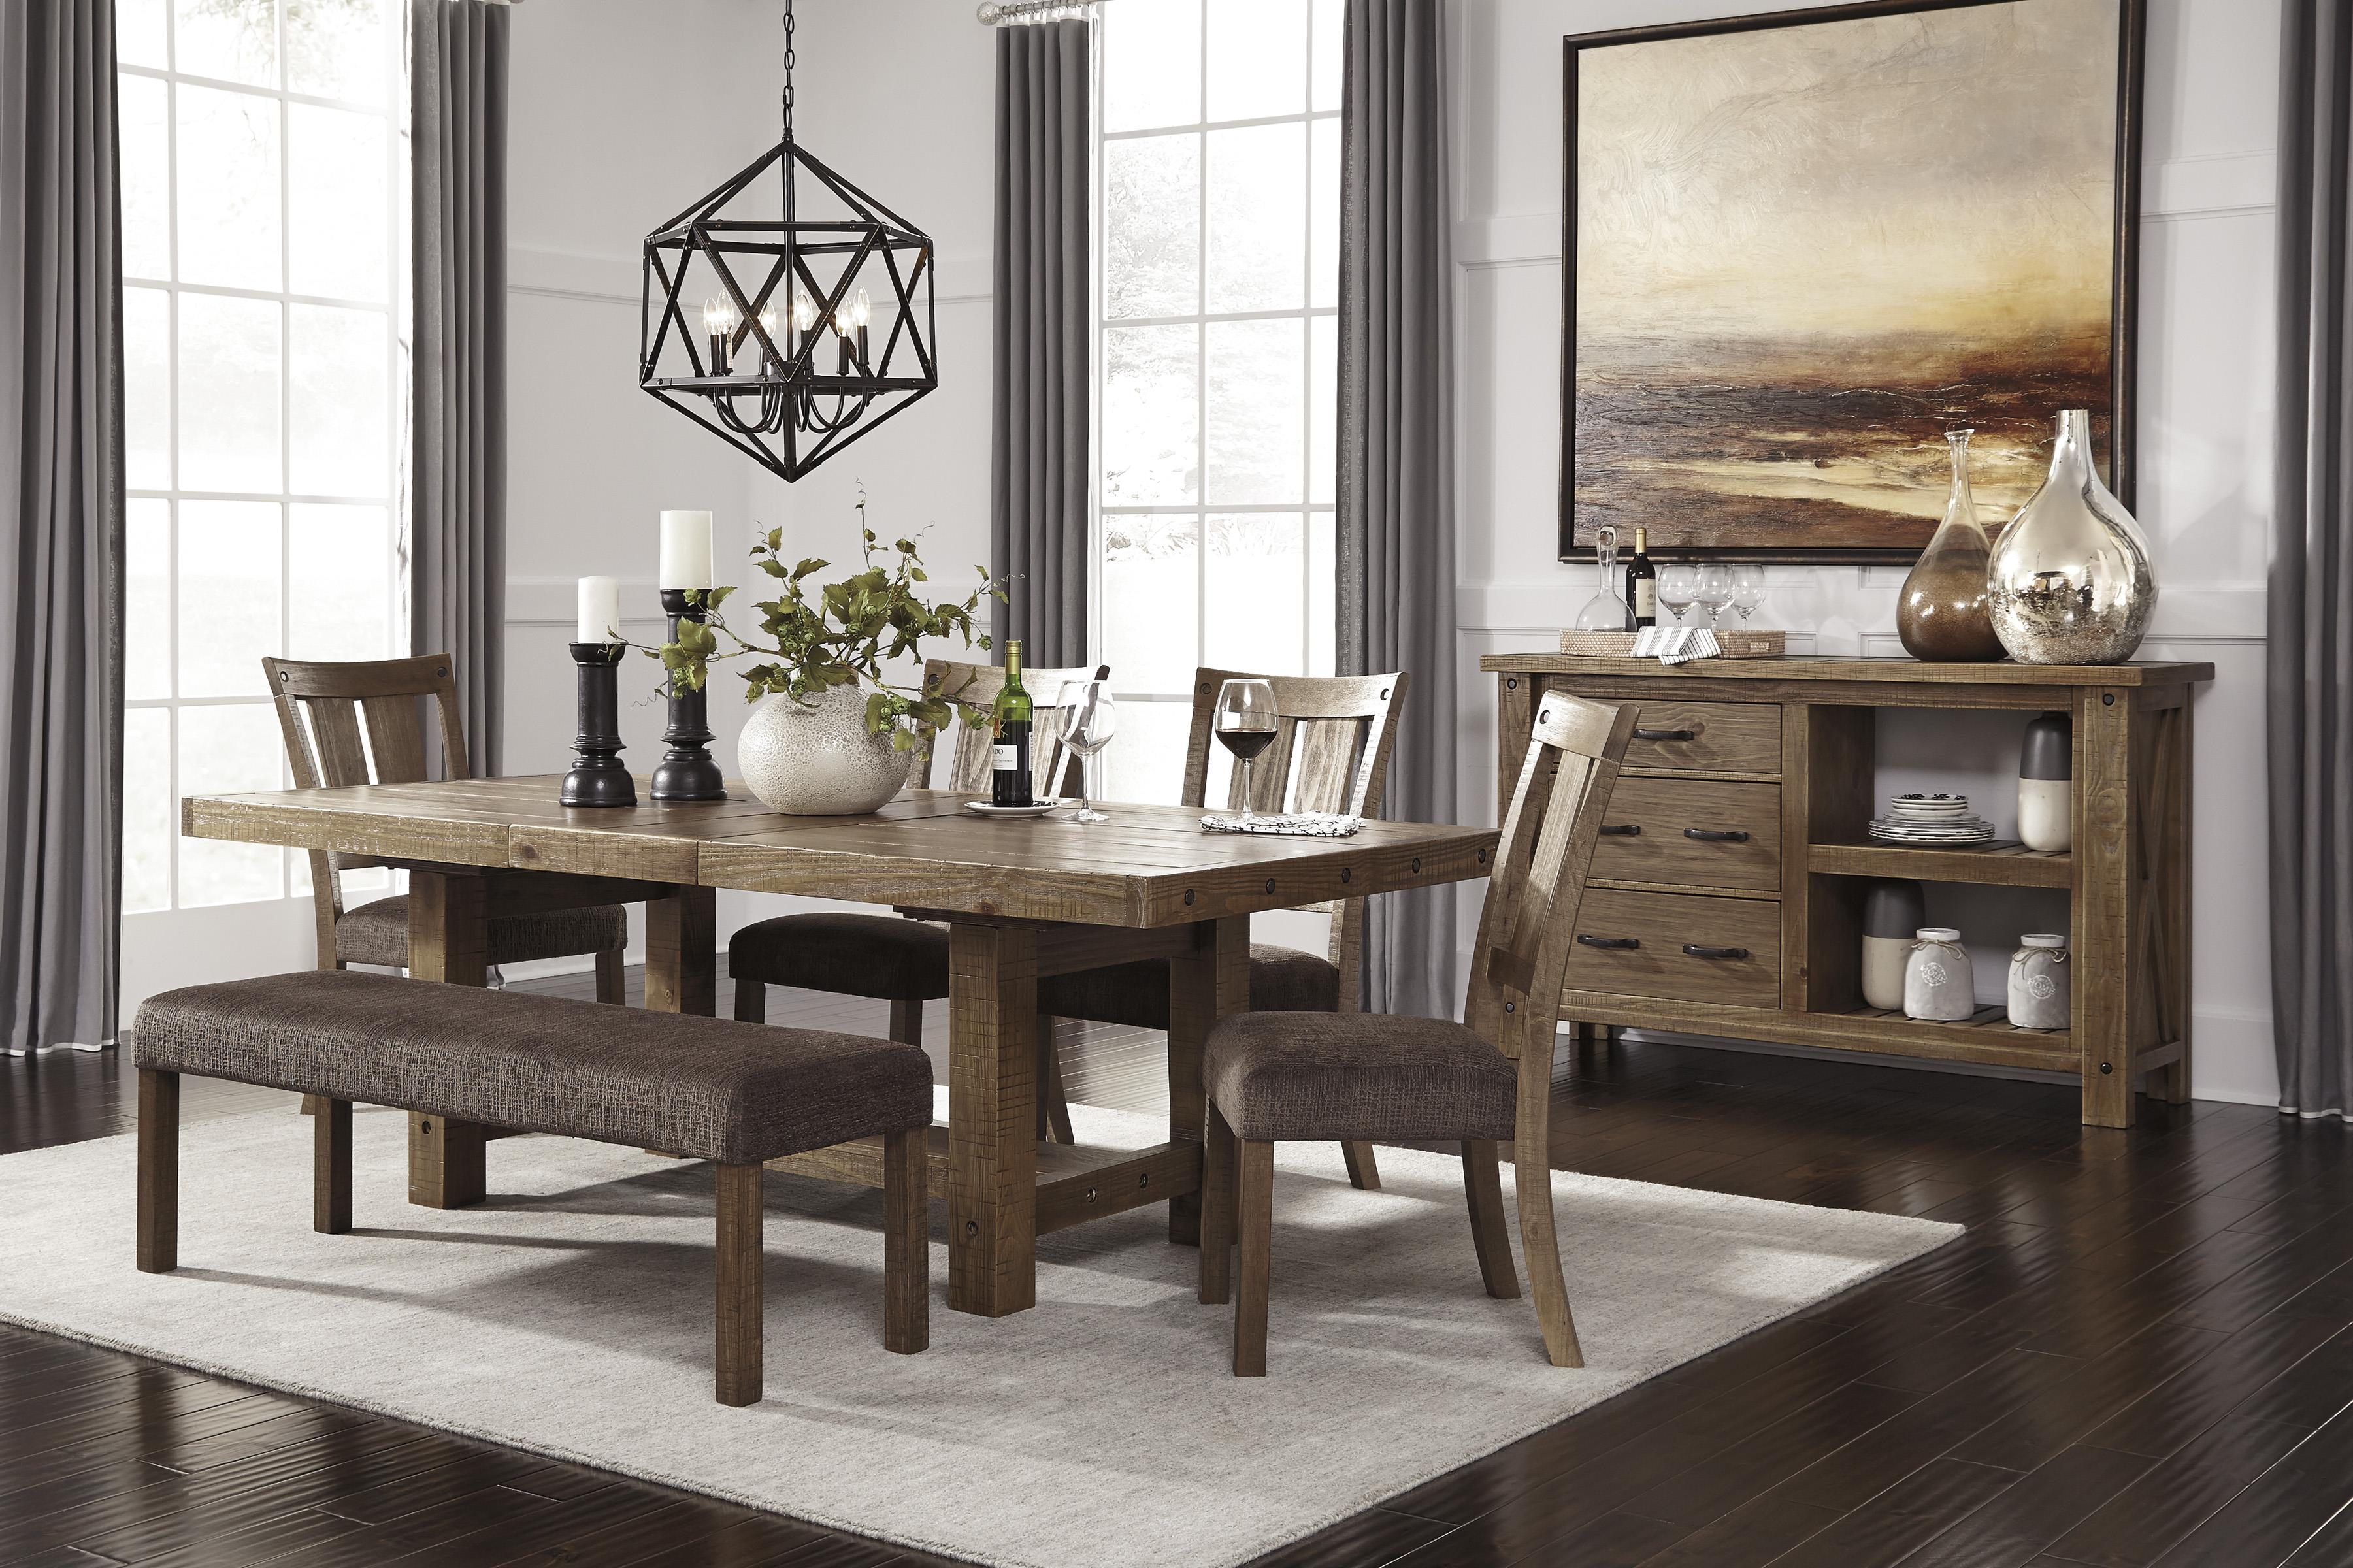 ashley dining room sets. Signature Design by Ashley Tamilo Rectangle Counter Height Table with Leaf  Wayside Furniture Pub Tables